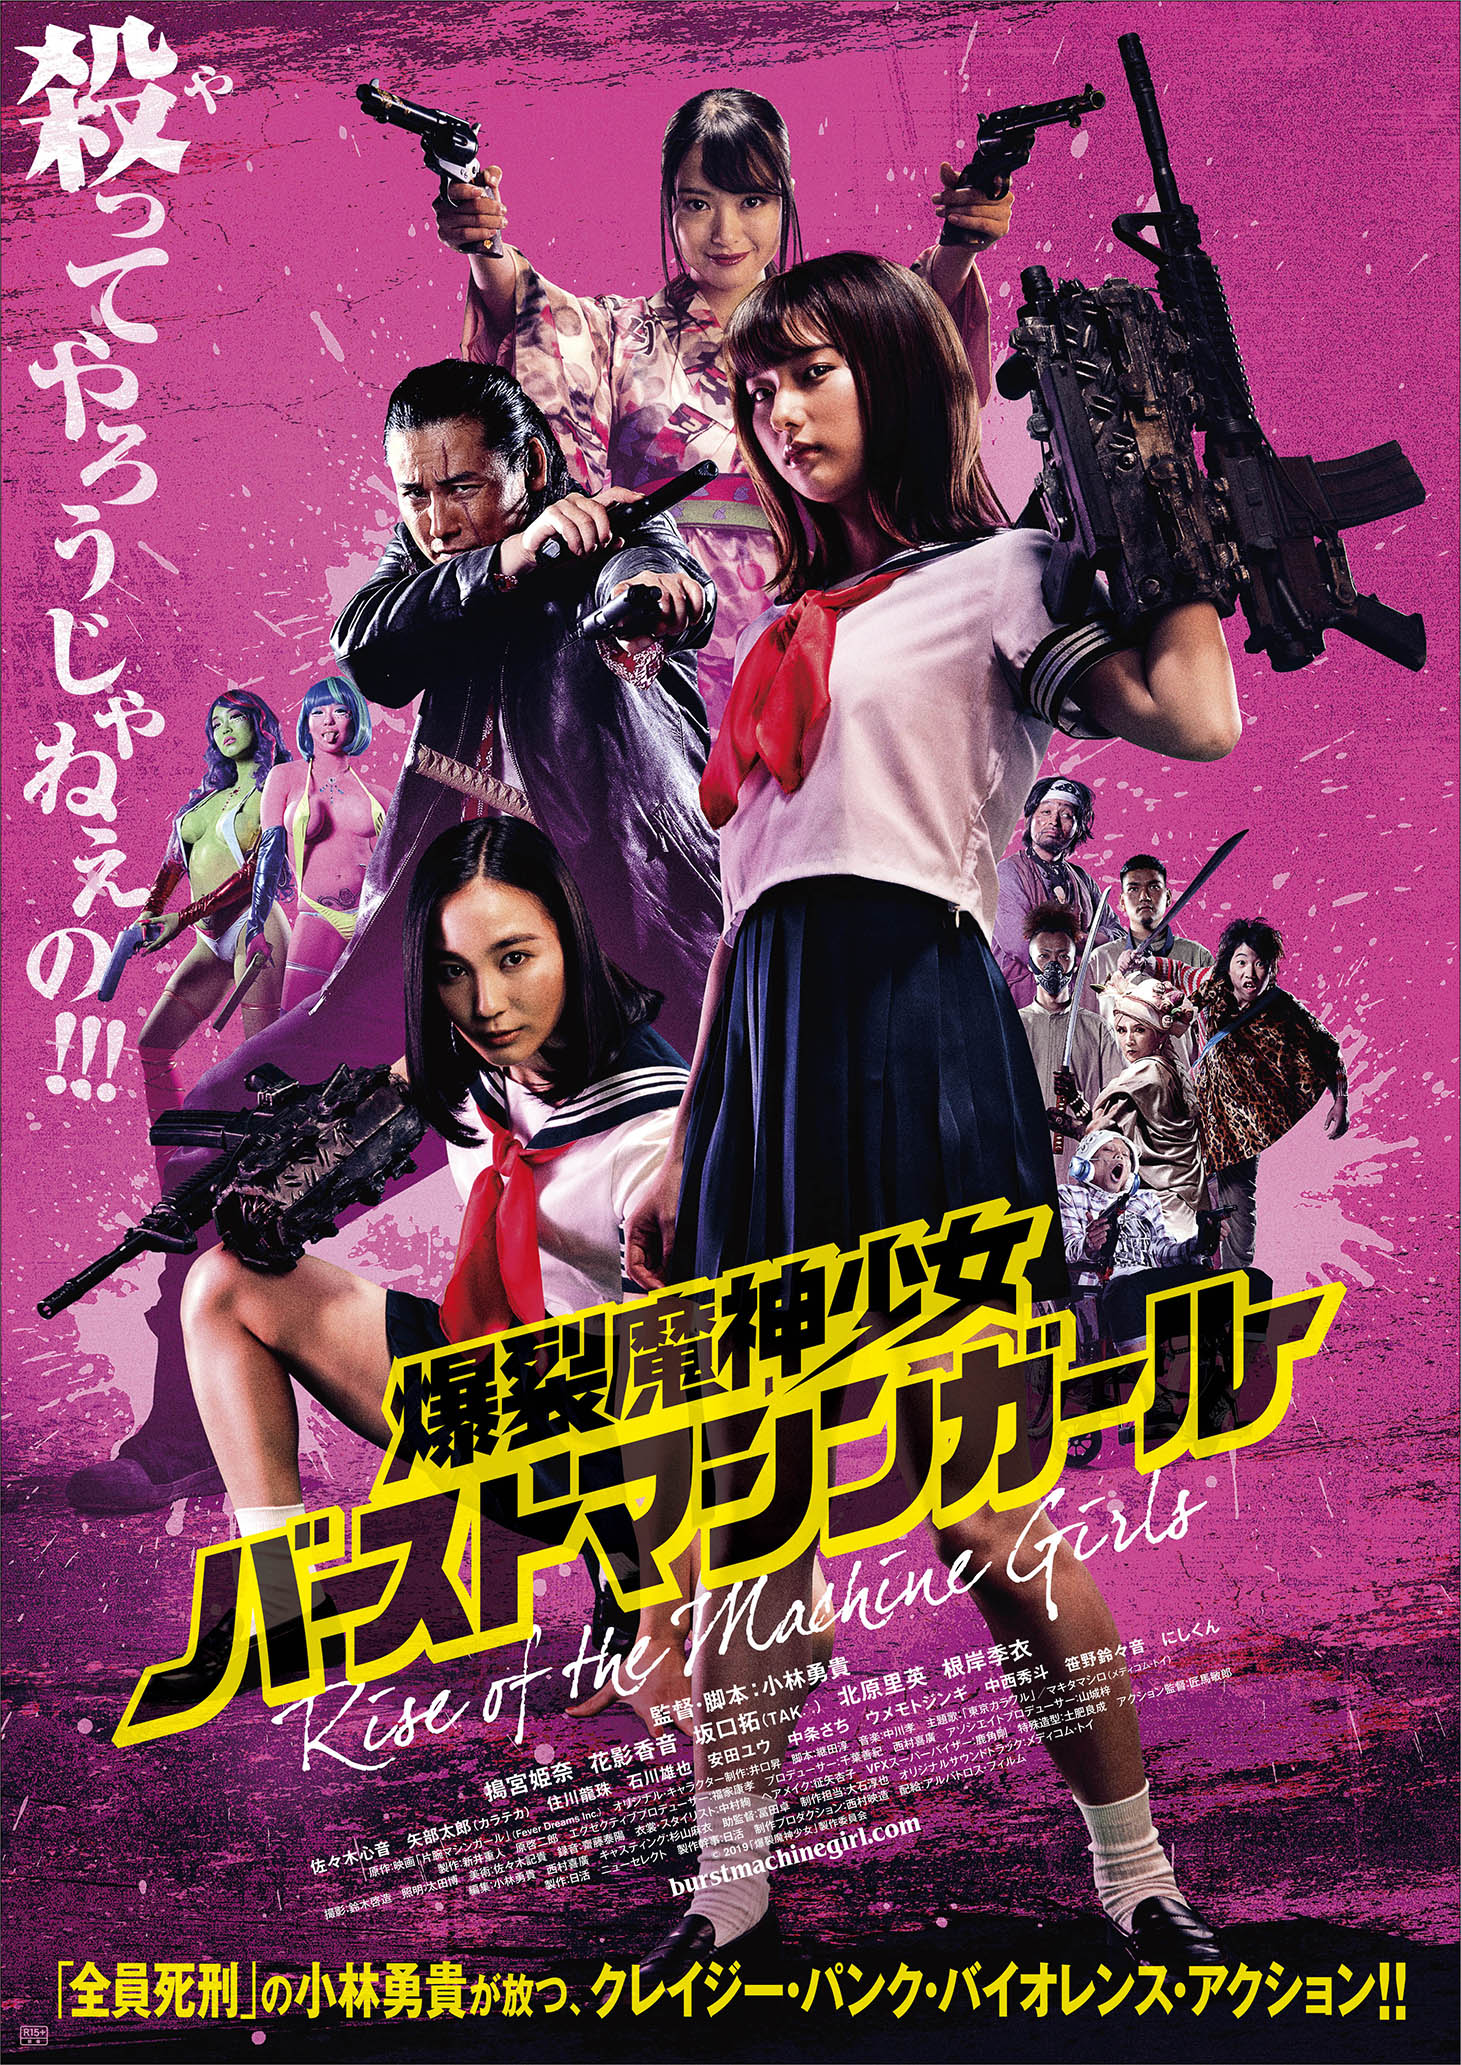 Poster for Rise of the Machine Girls